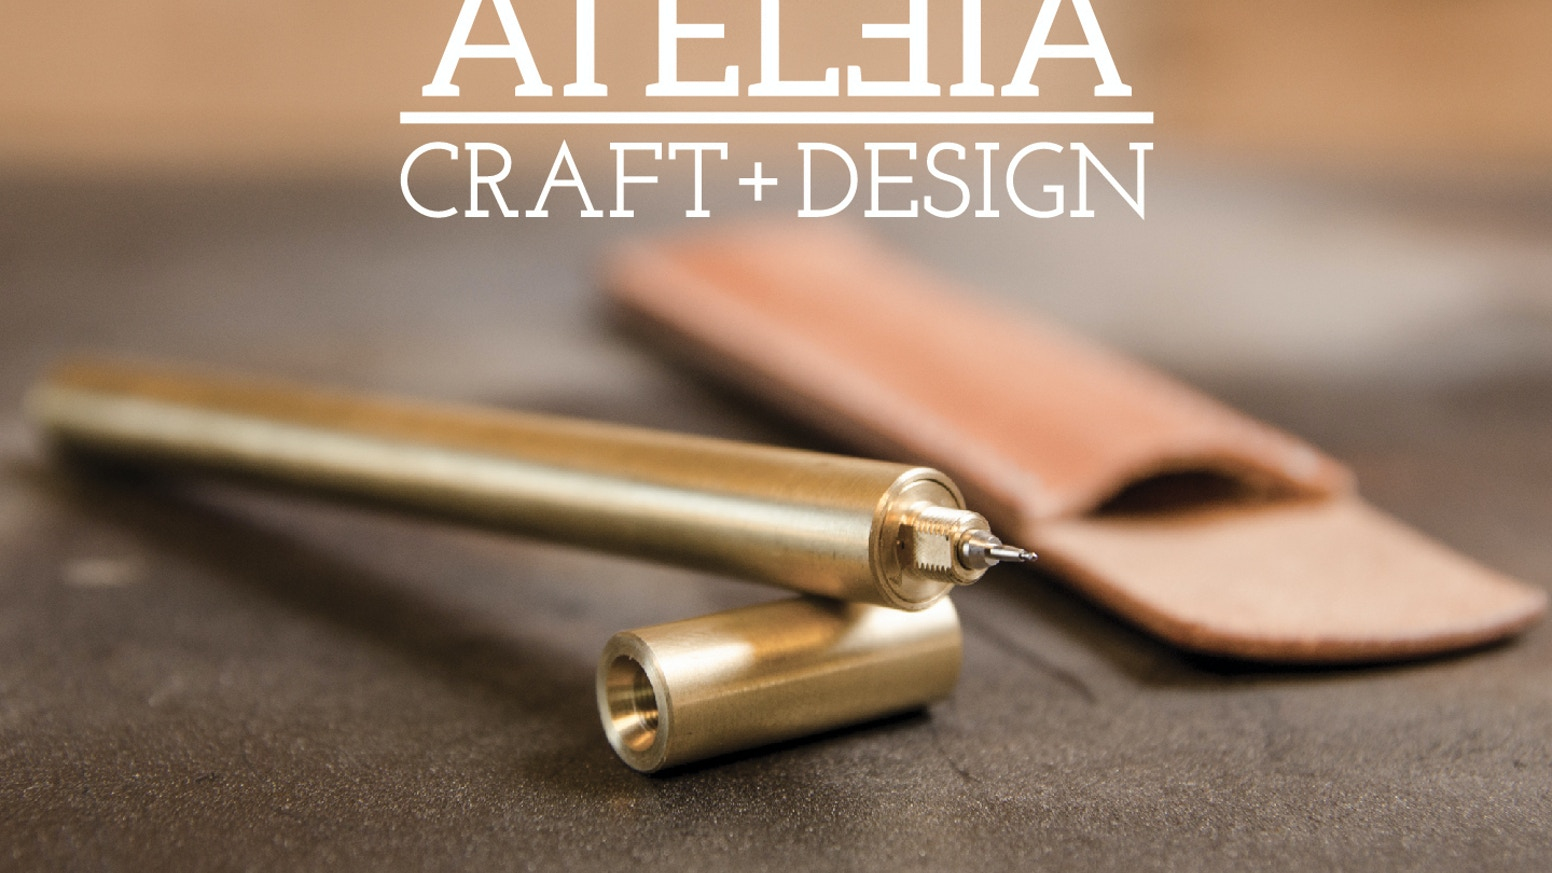 ATELEIA's brass pen houses Hi-Tec-C and other popular cartridges and pairs well with hand made leather journal and accessories.